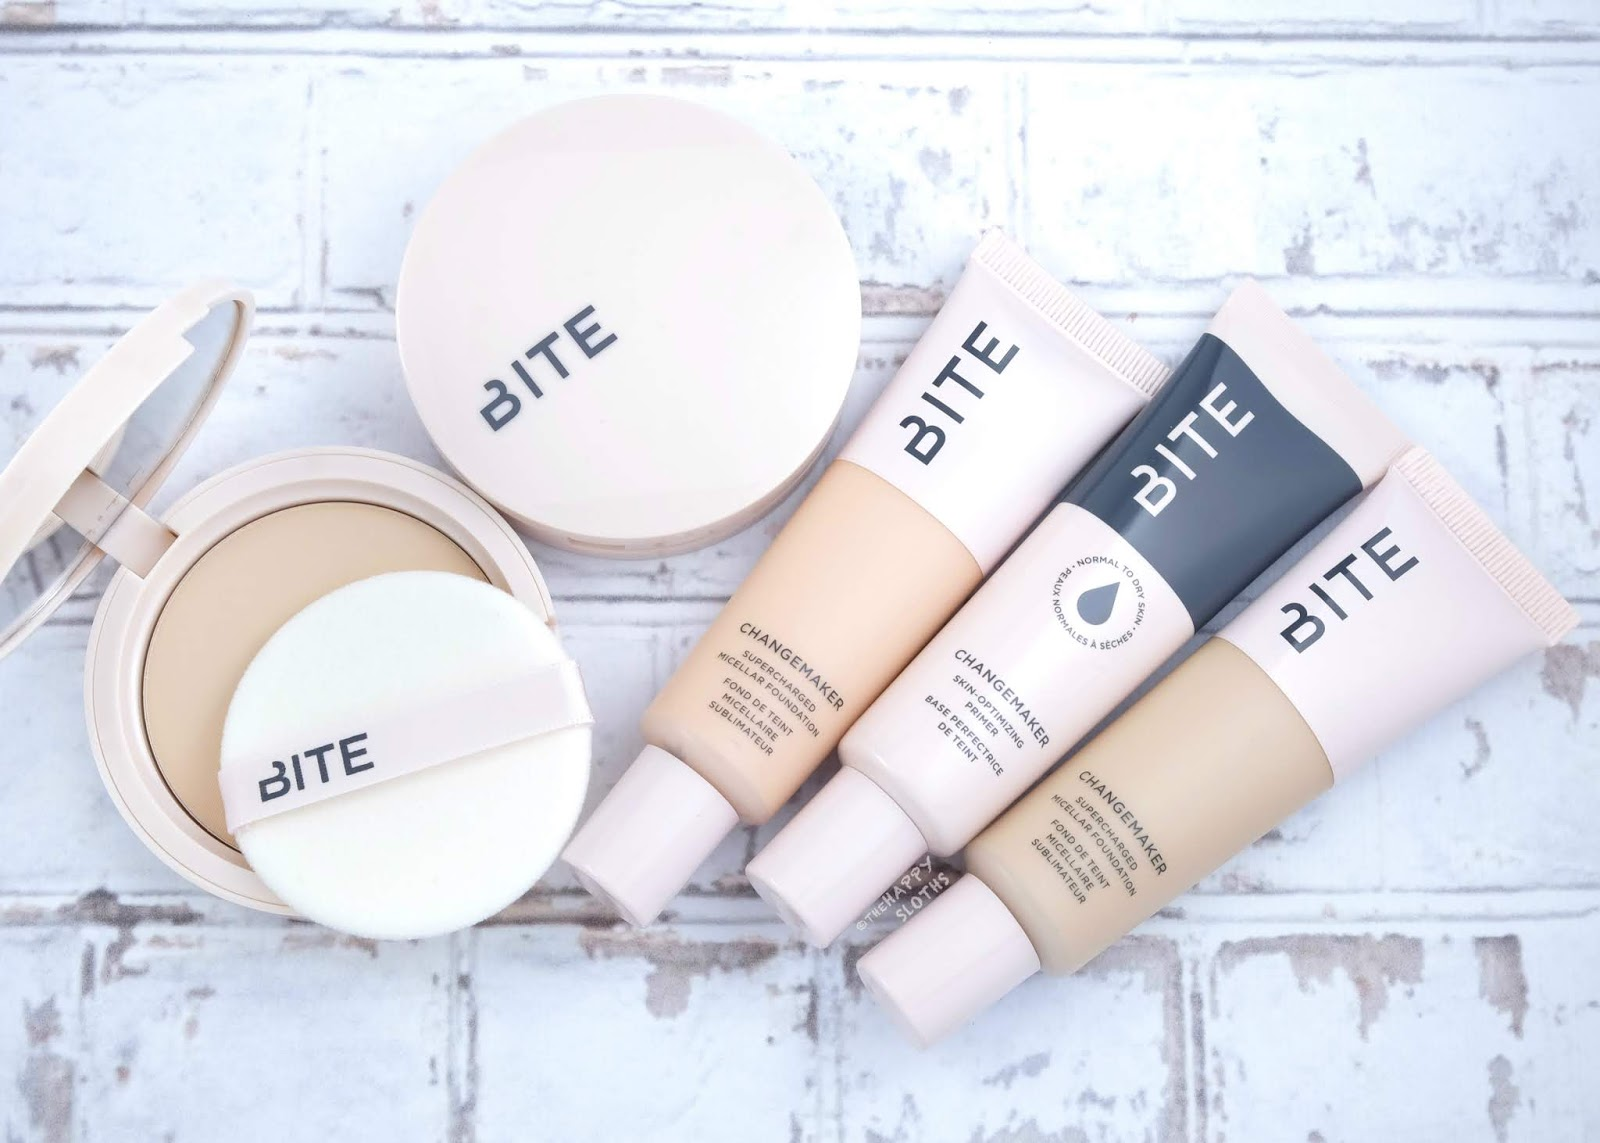 Bite Beauty | Changemaker Skin-Optimizing Primer, Changemaker Supercharged Micellar Foundation & Changemaker Flexible Coverage Pressed Powder: Review and Swatches